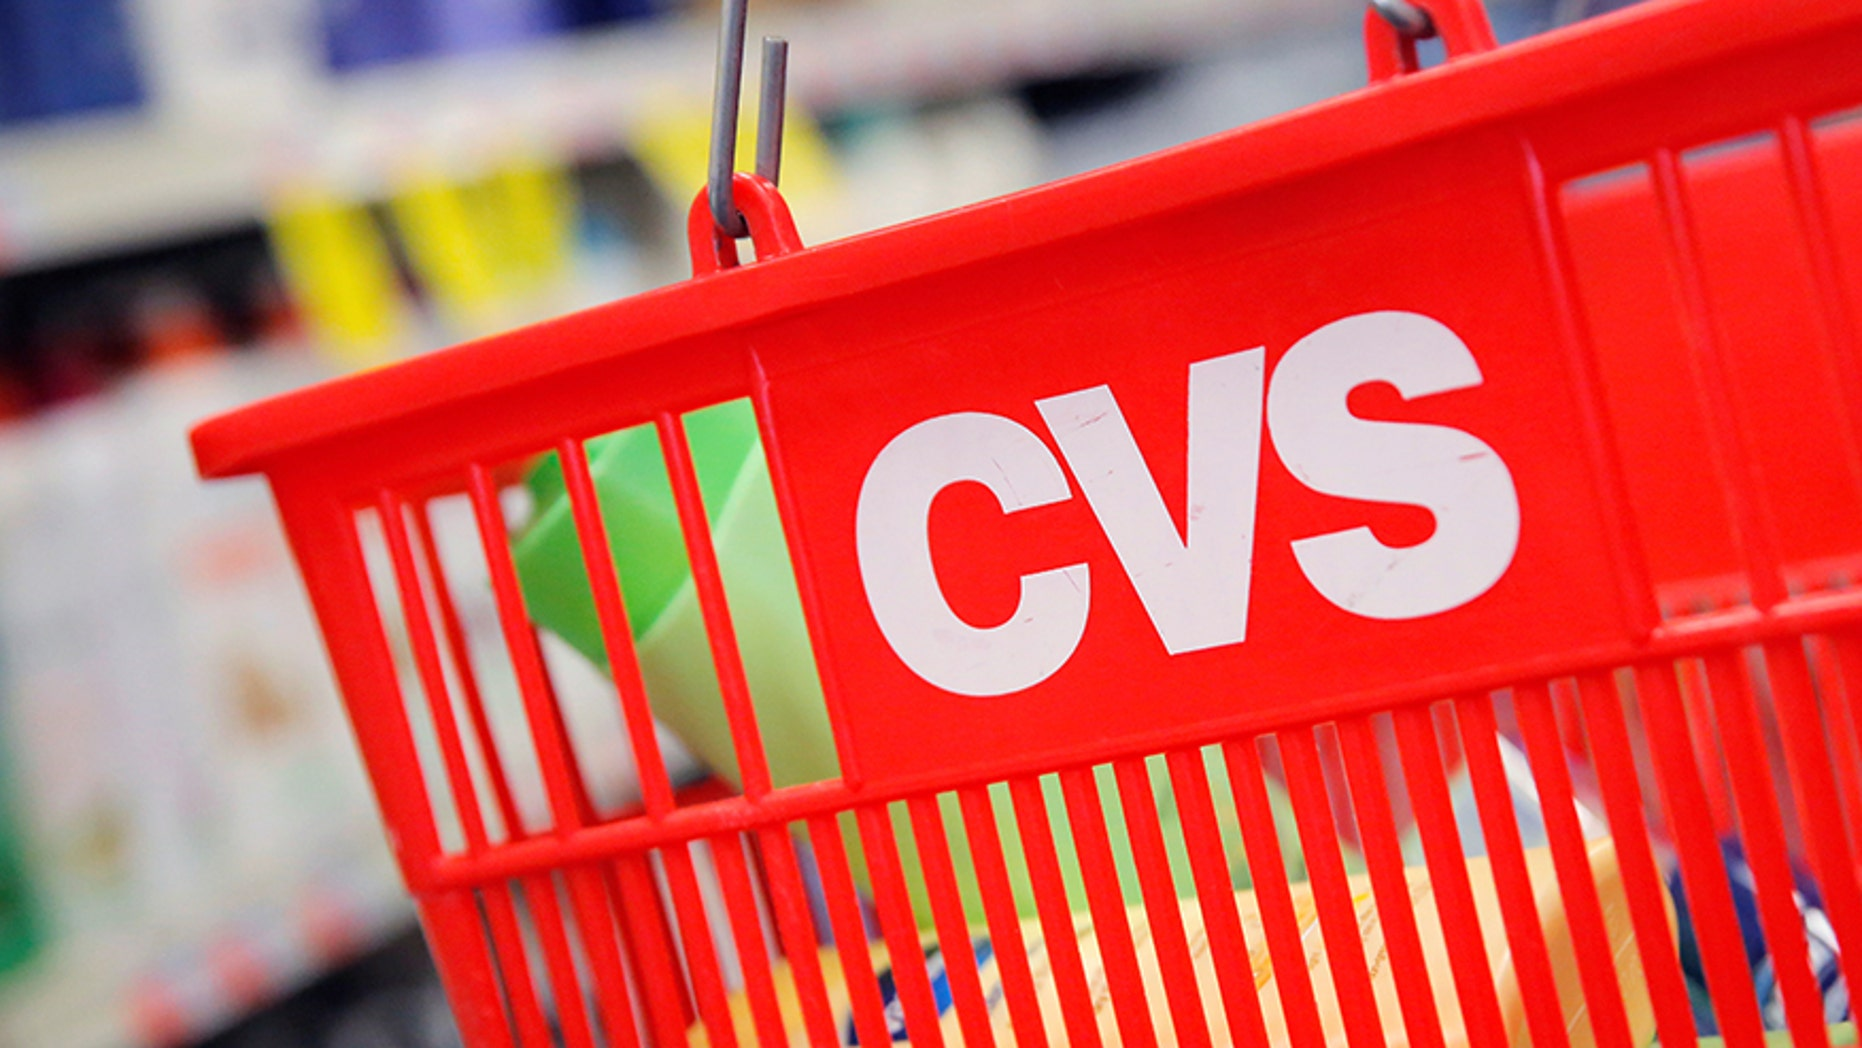 The CVS logo on a basket at one of their stores.